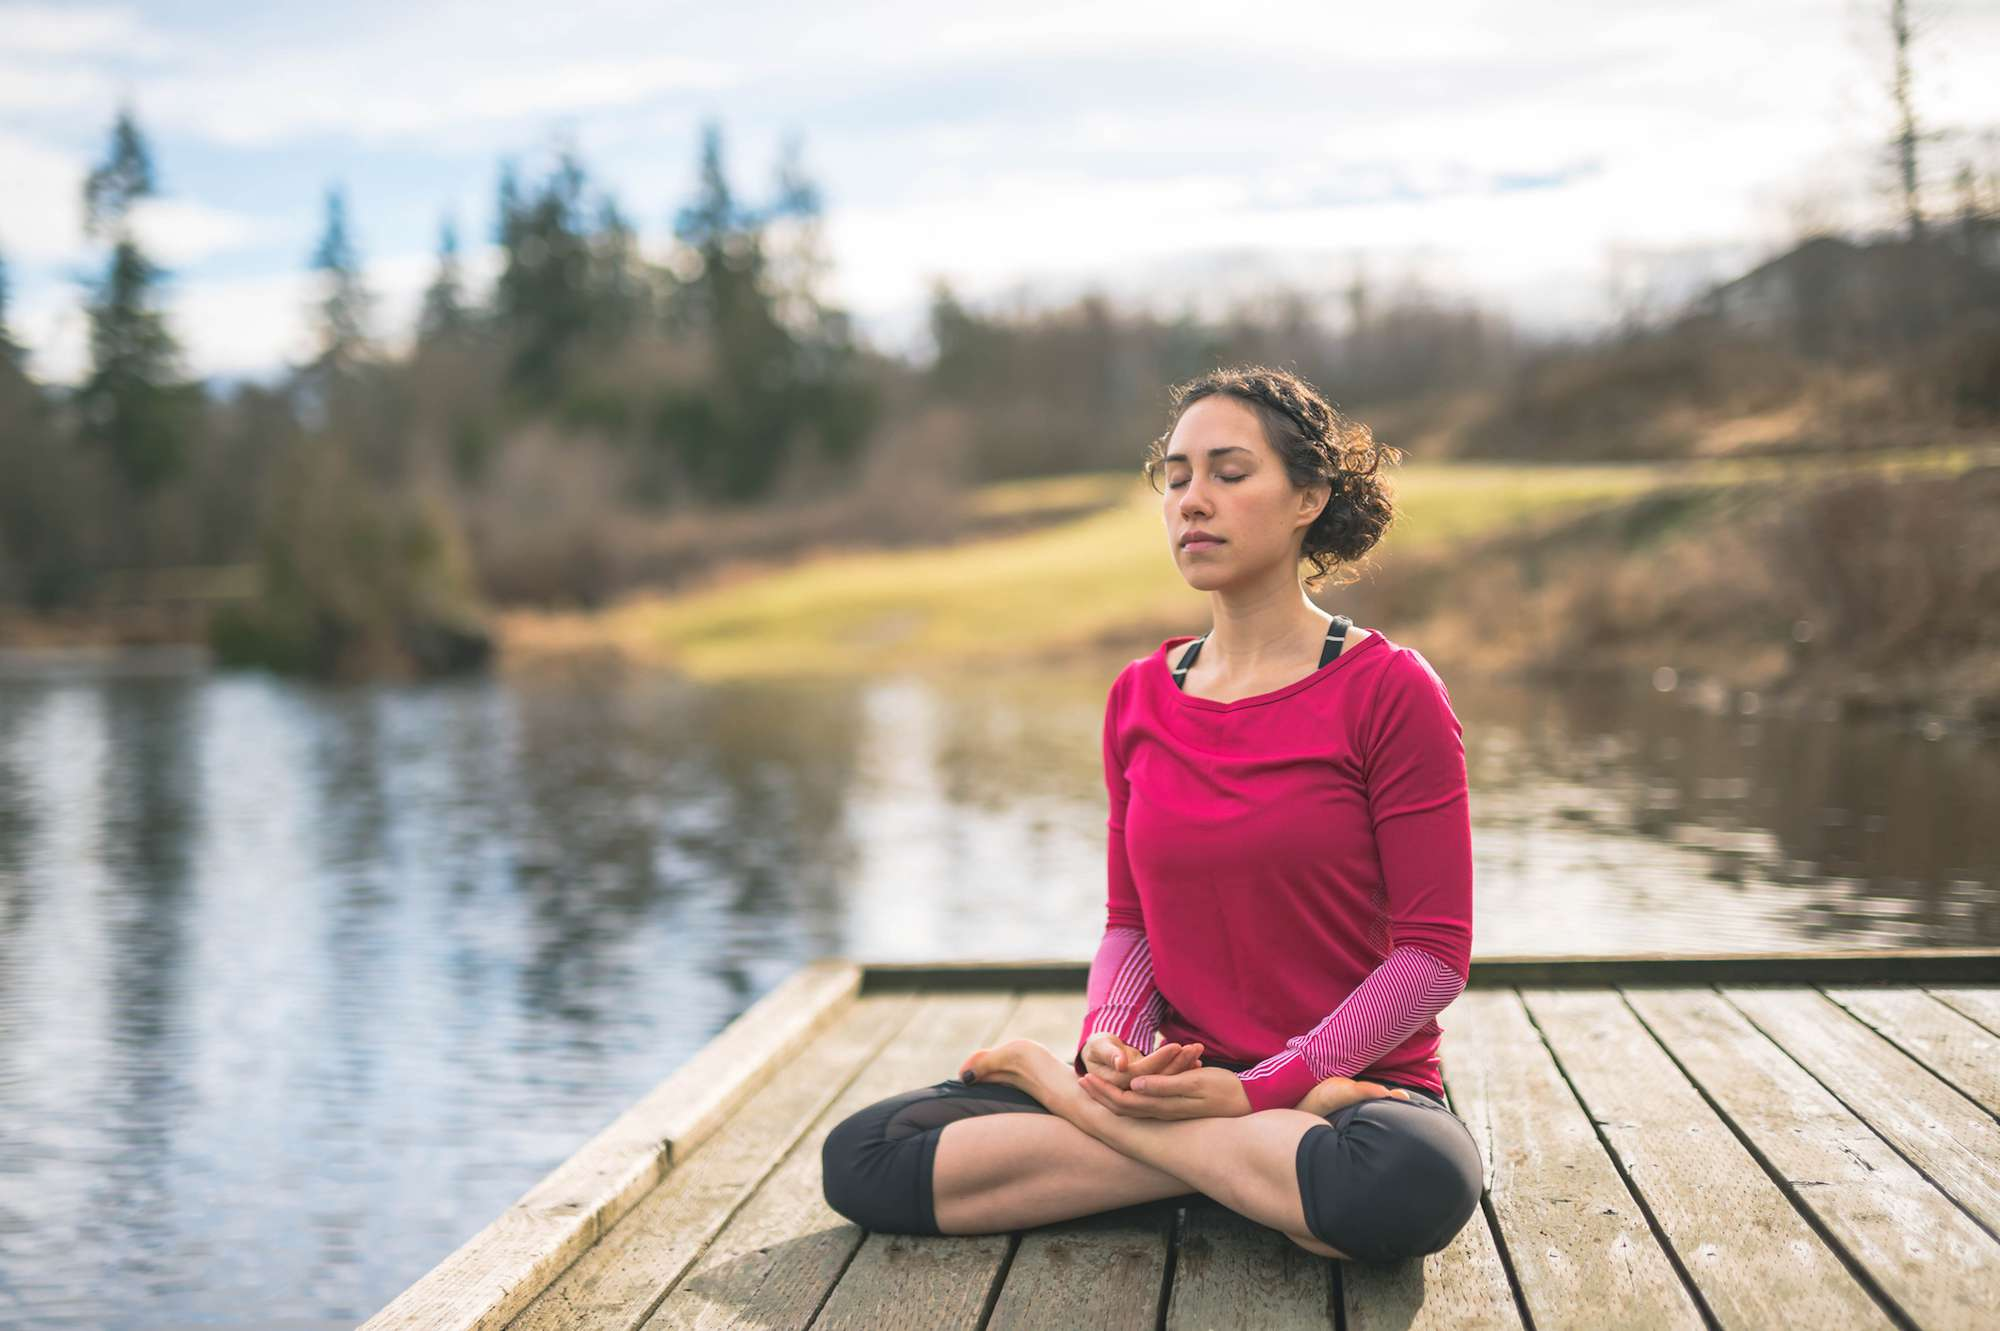 Woman practicing yoga on a dock